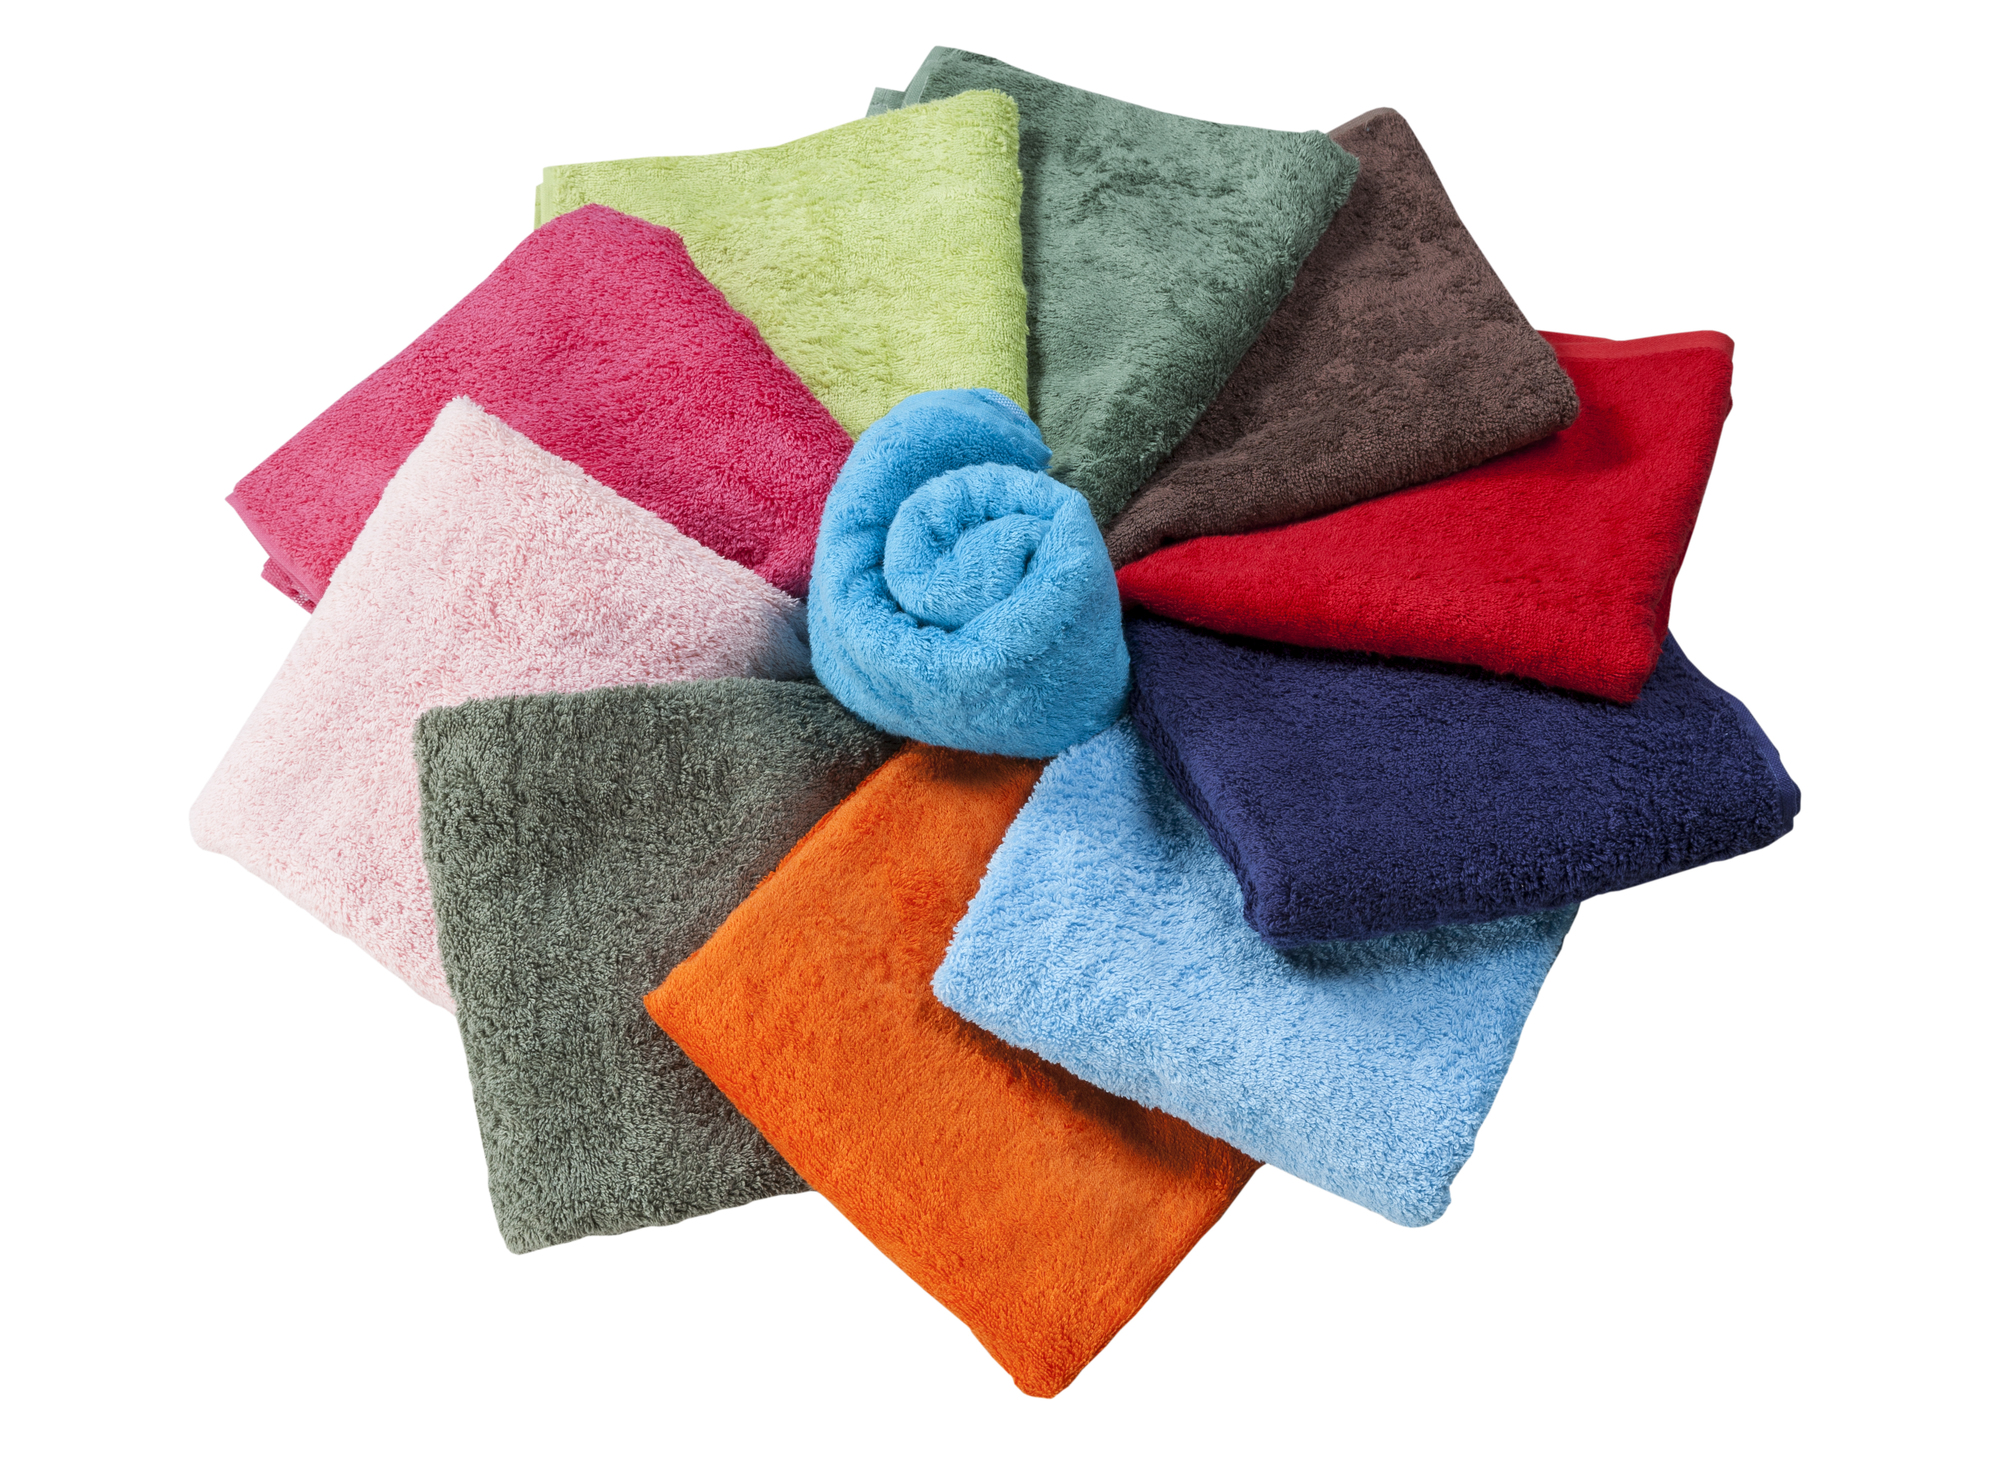 collection of towels in the shape of a flower isolated on white